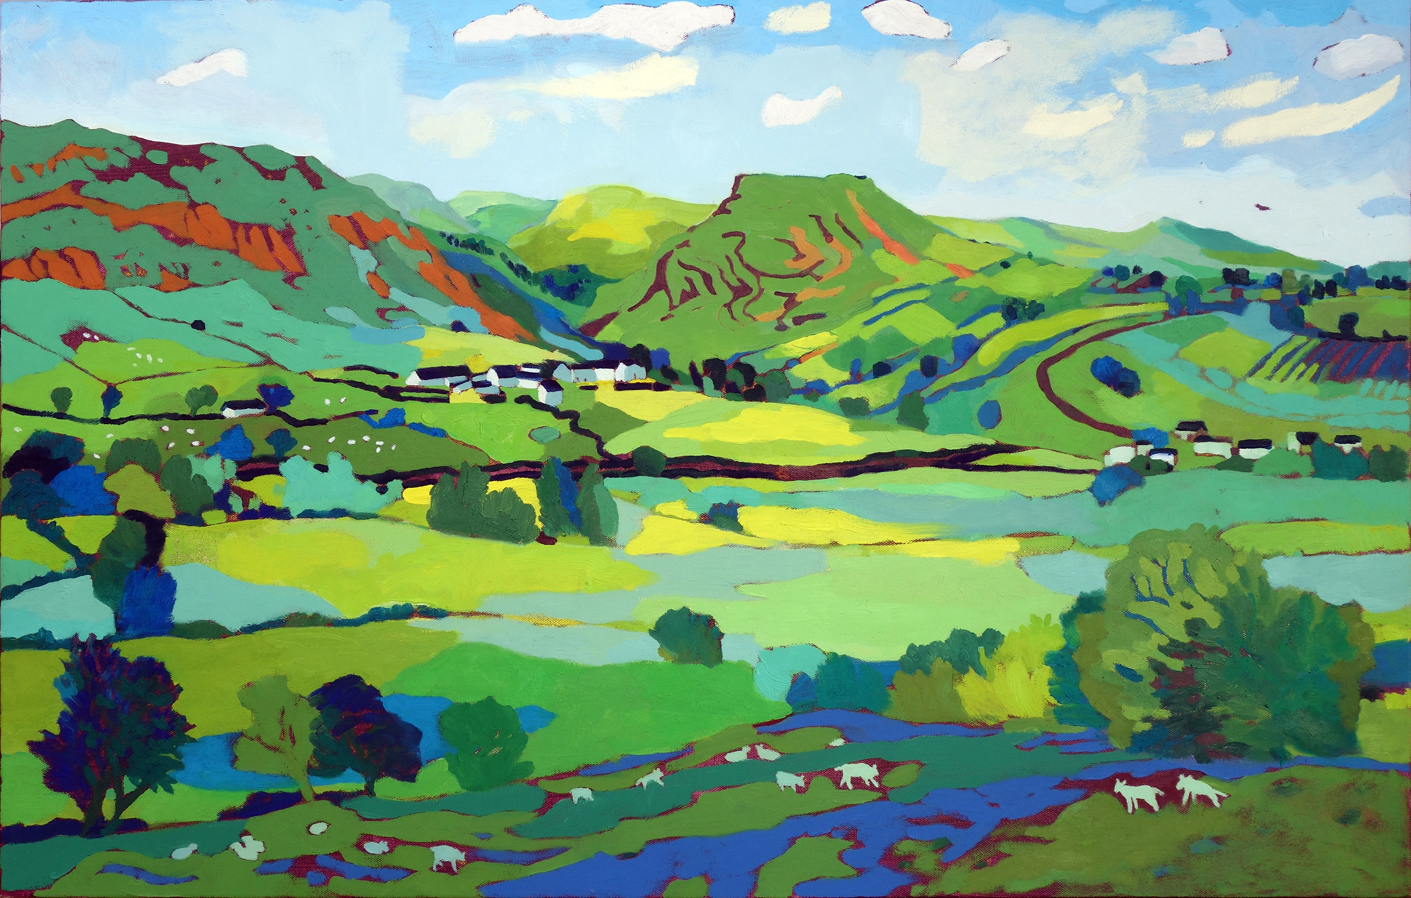 Thorpe Cloud and Lambs. Oil on canvas. 60 x 97 cm. (sold)